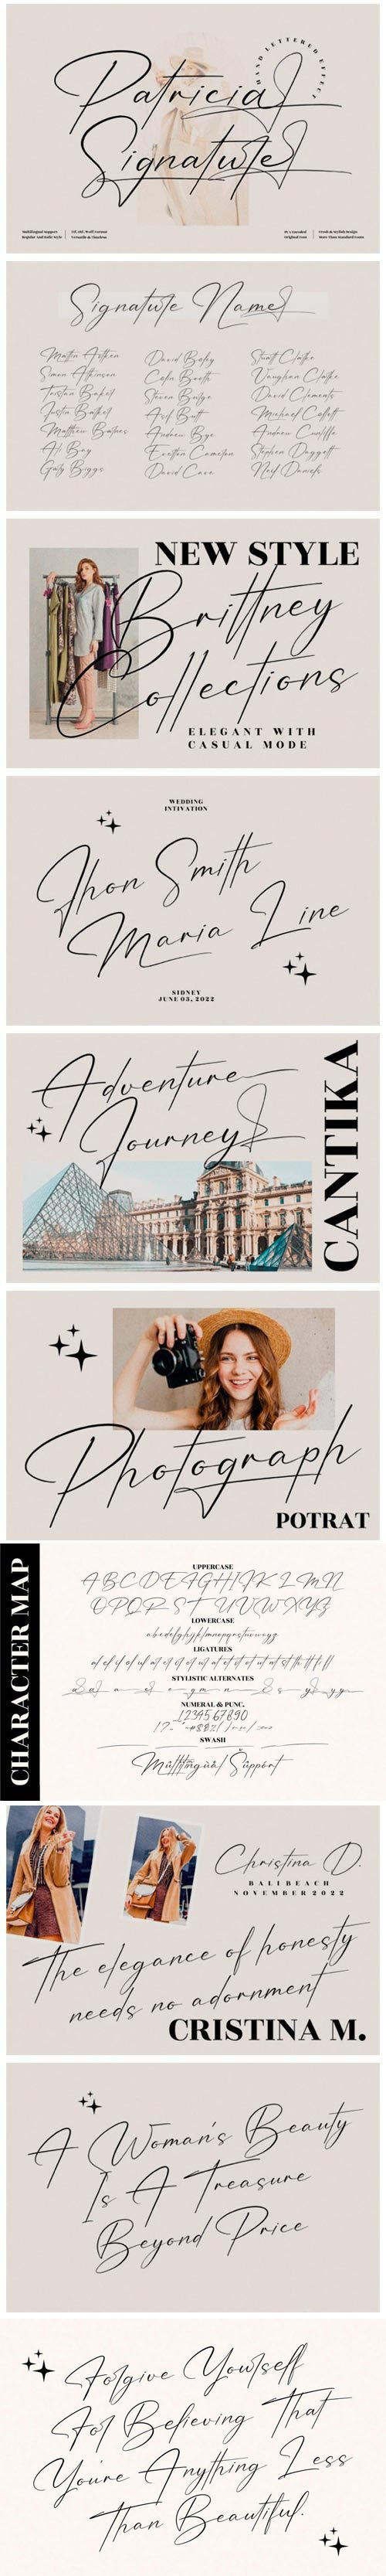 Patricia Signature - Handlettered Effect Font [2-Weights]